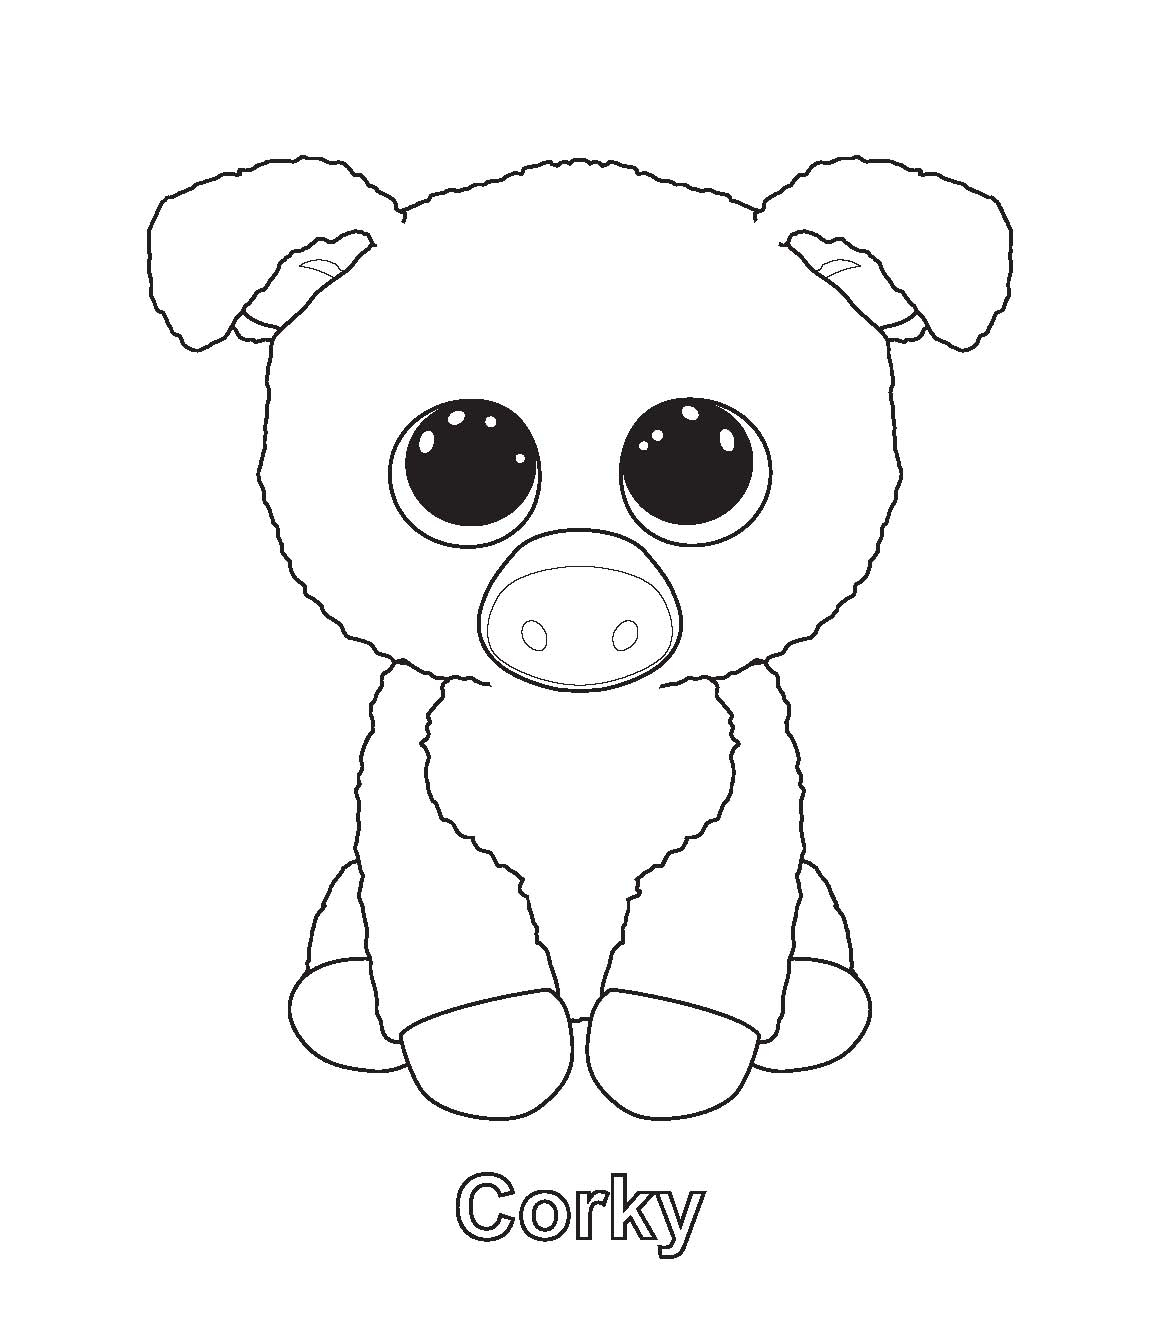 Coloring Pages : Excelent Free Beanie Boo Coloring Pages - Free Printable Beanie Boo Coloring Pages